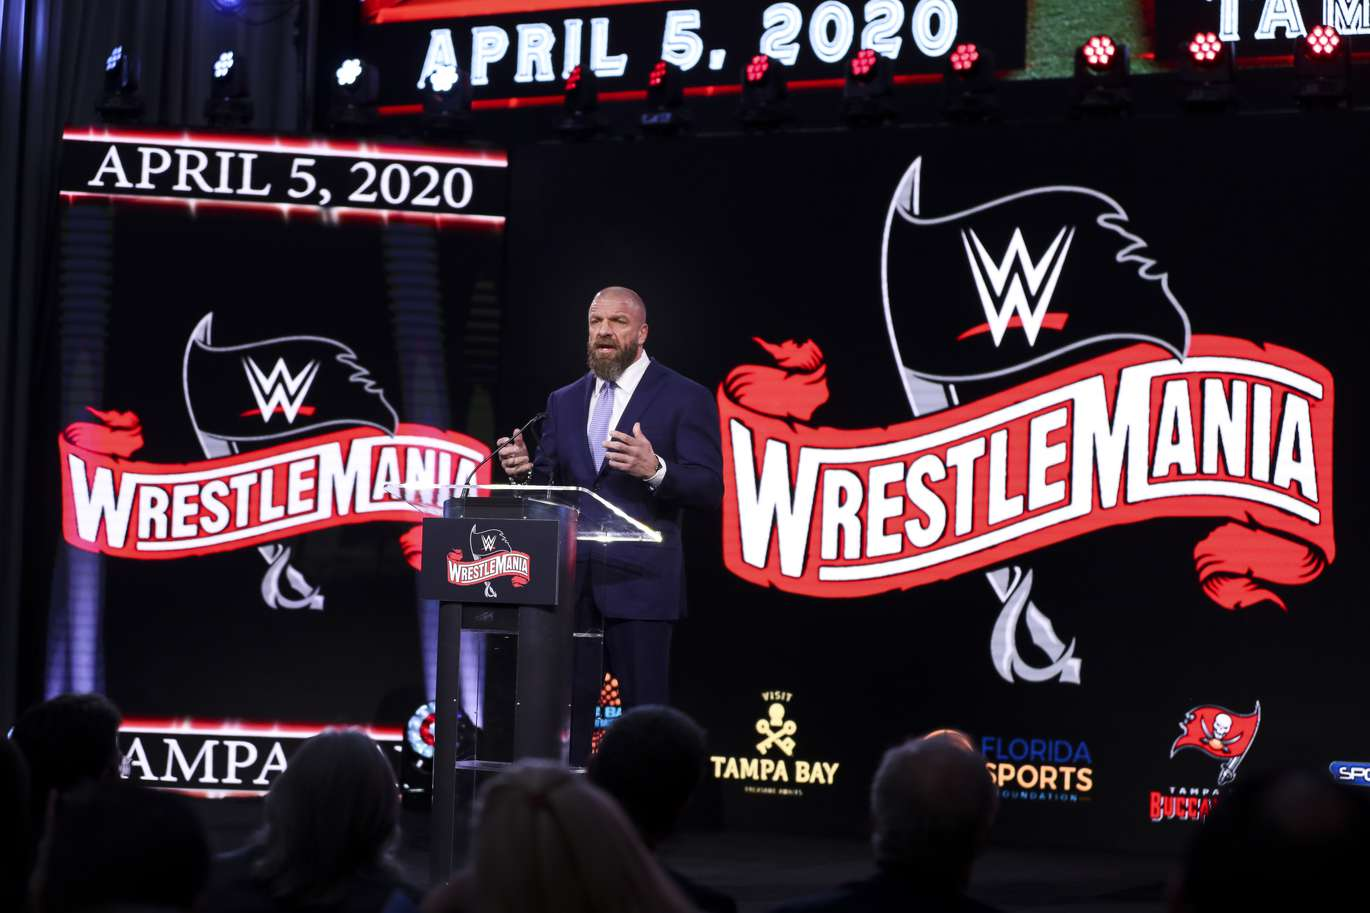 WrestleMania coming to Tampa in 2020 | Tampa Bay Times